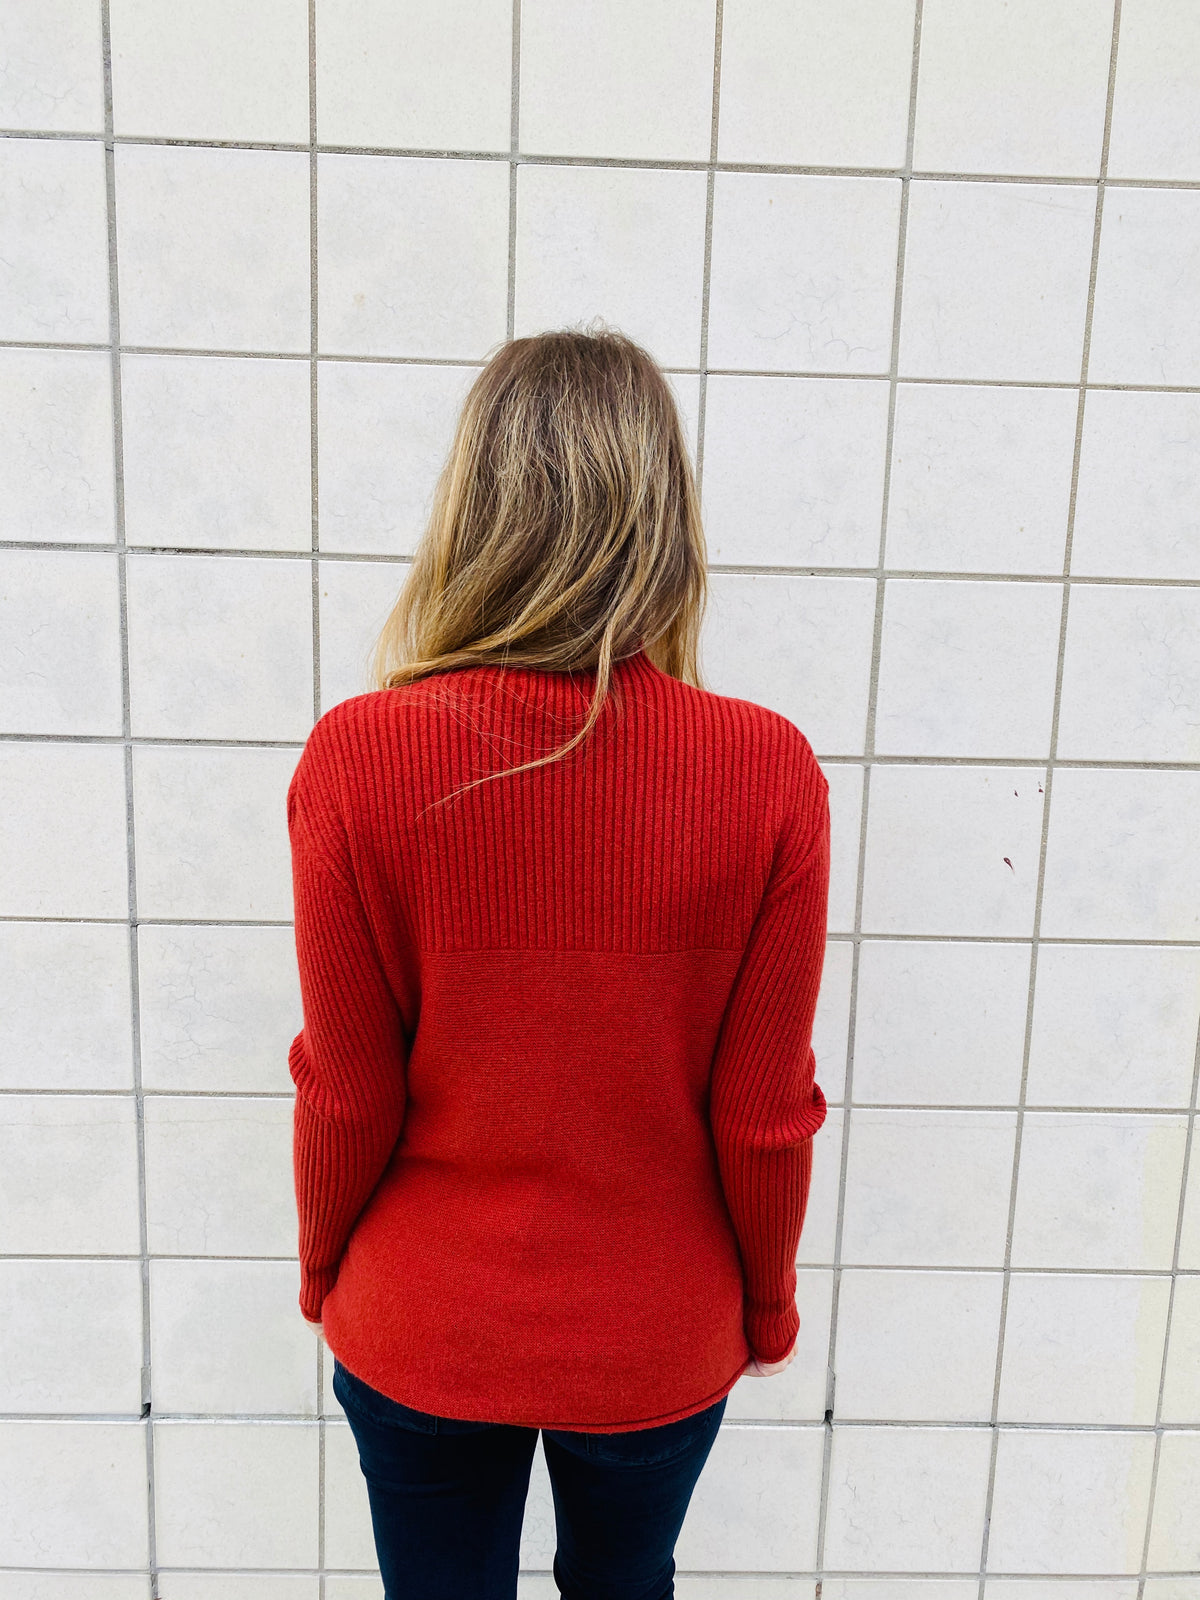 Charlie B Fall Equinox Sweater (Various Colors)